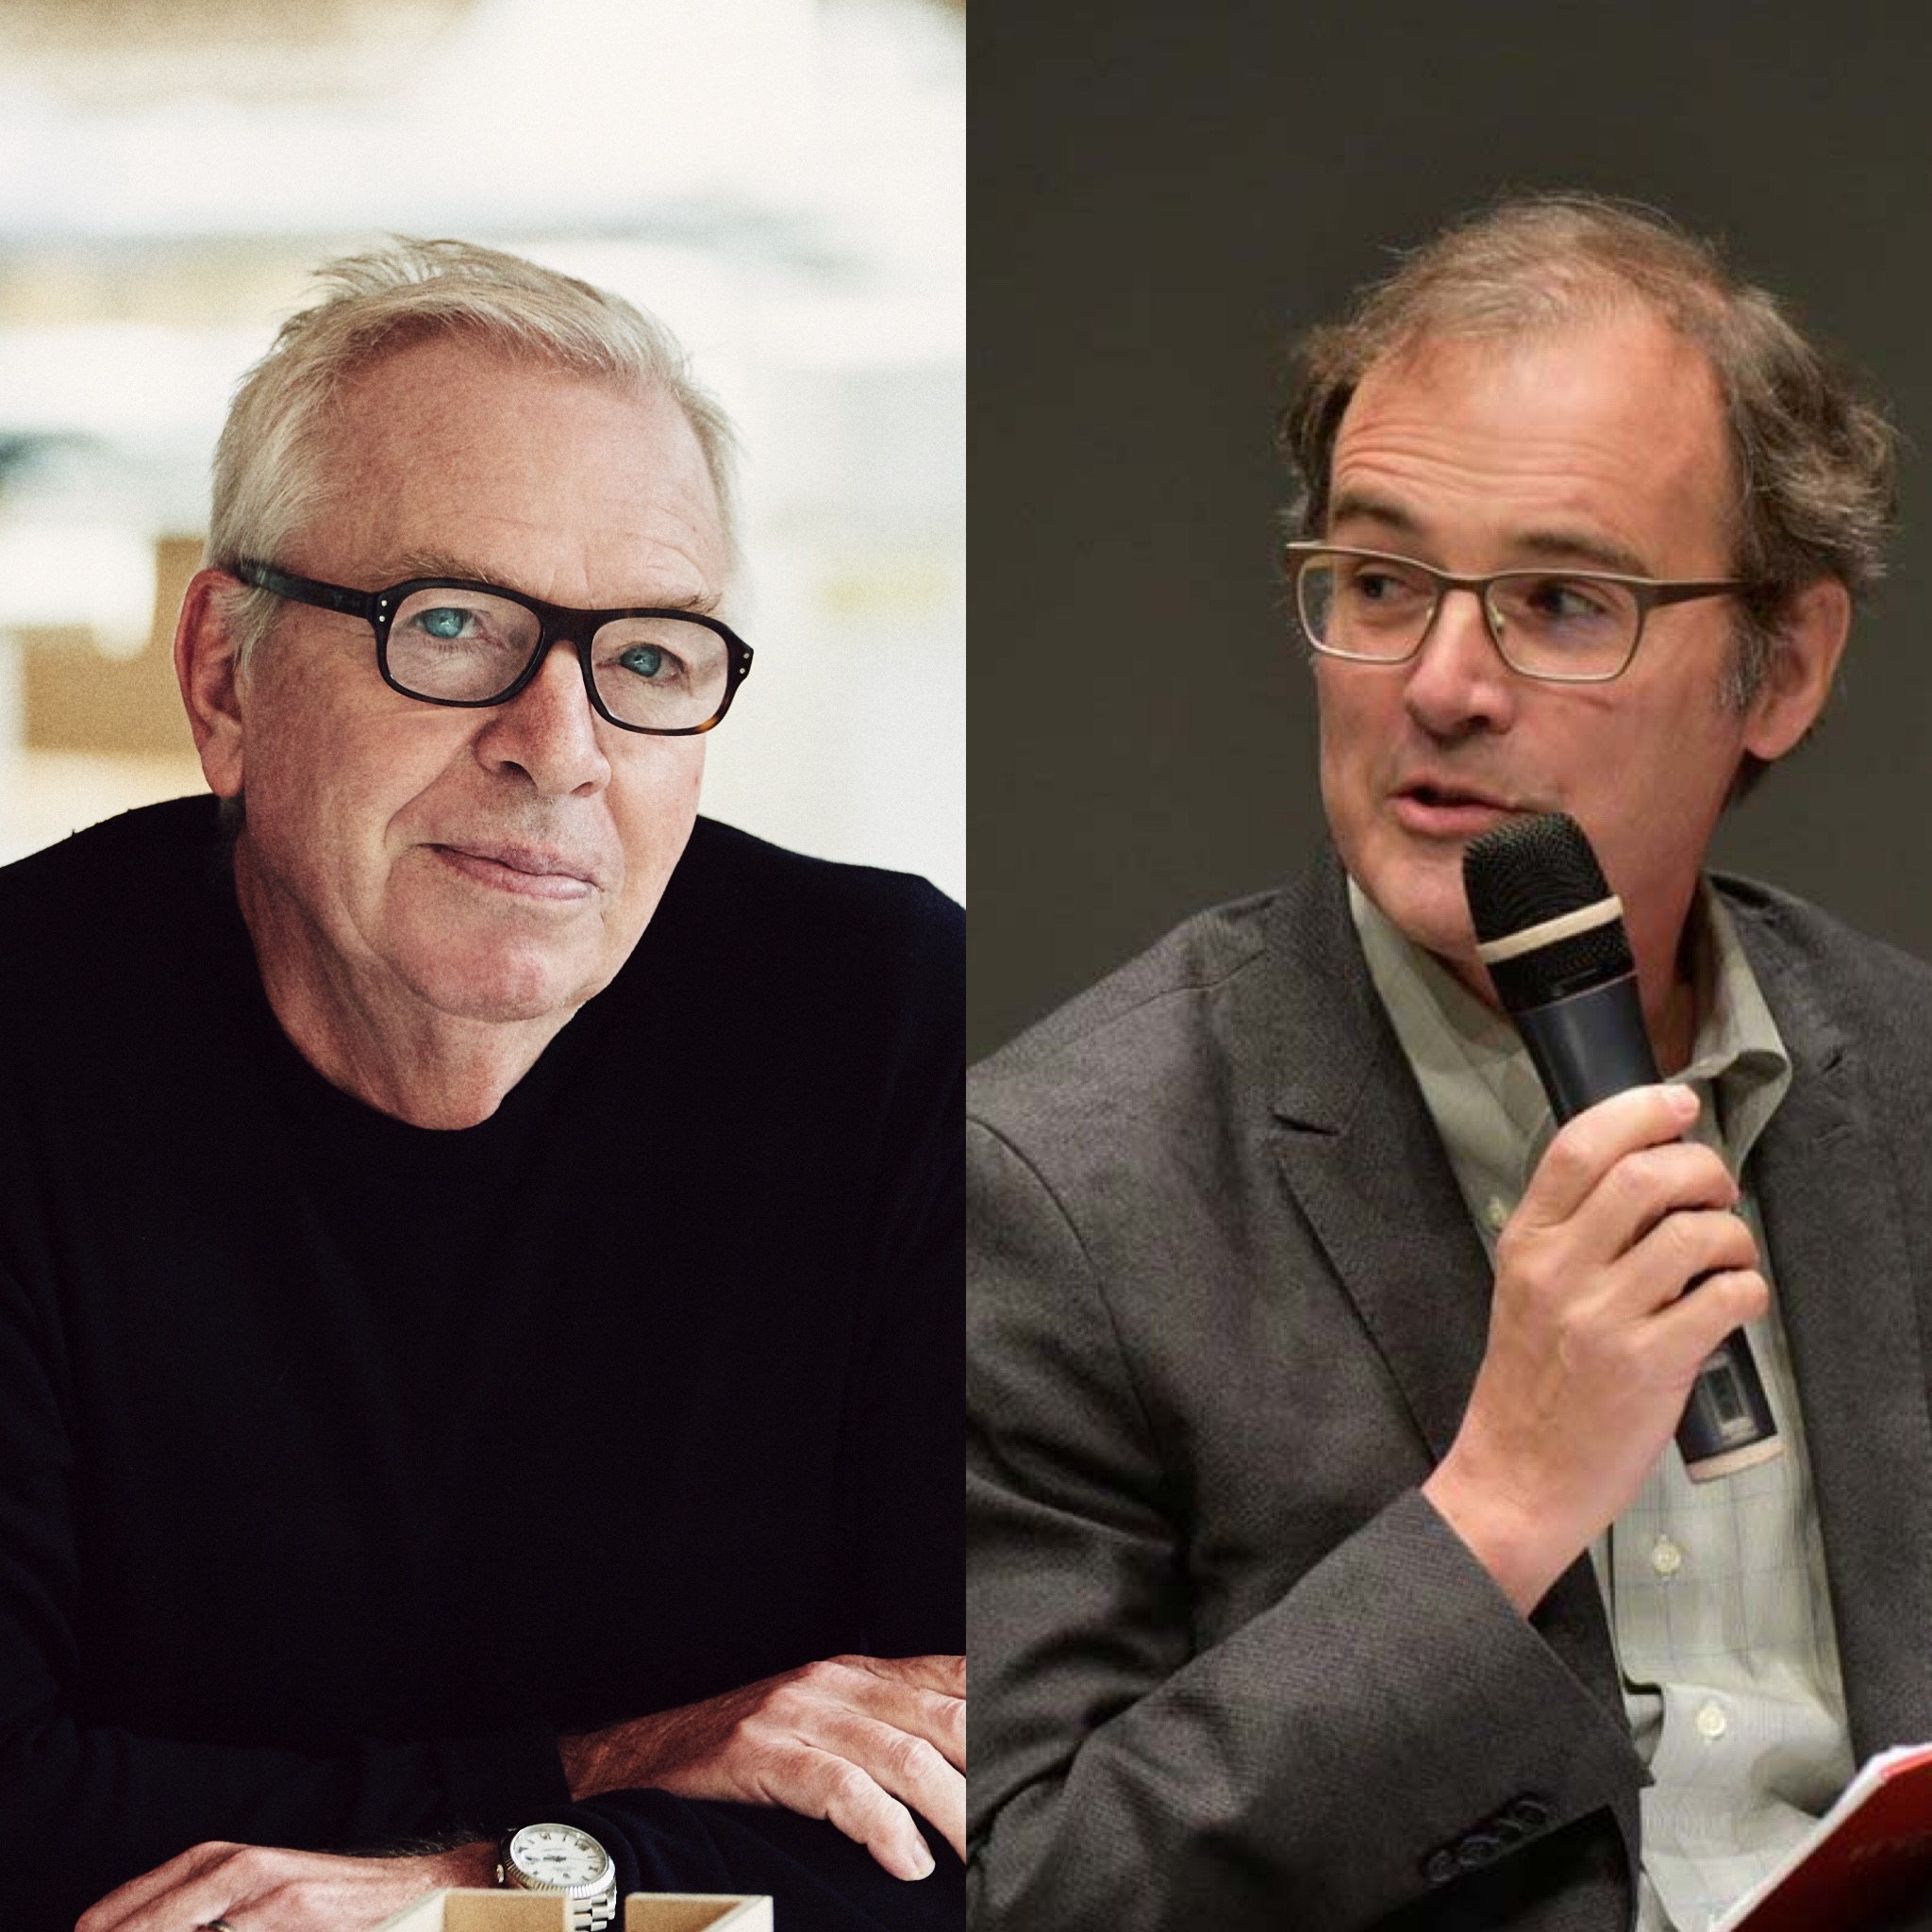 Photo of David Chipperfield on the left, with a photo of Barry Bergdoll on the right.